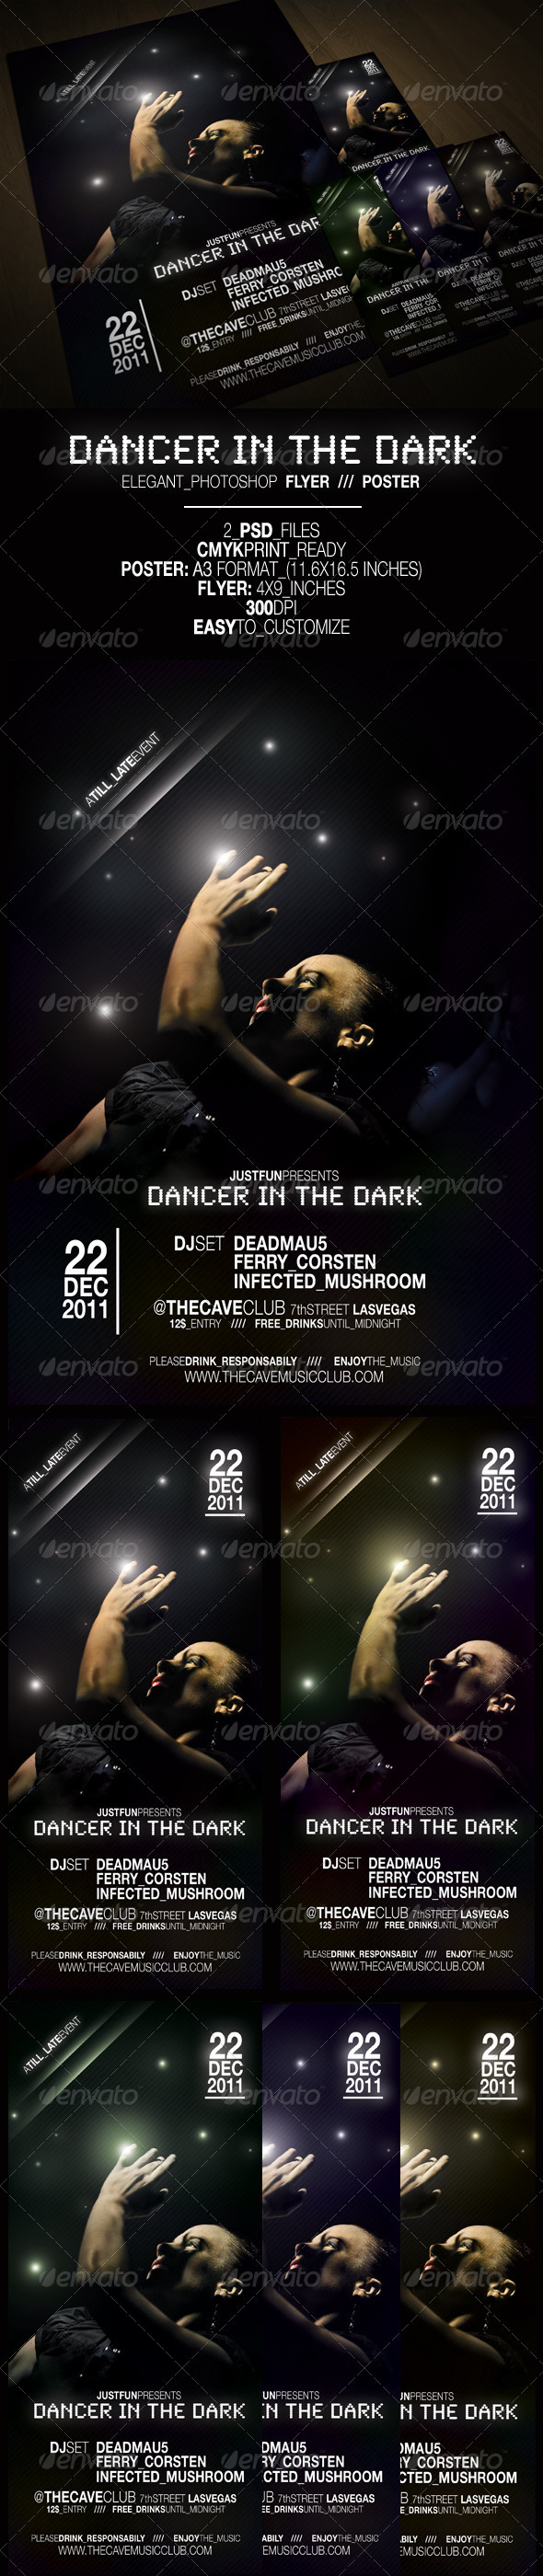 Dancer in the Dark - Poster & Flyer - Clubs & Parties Events